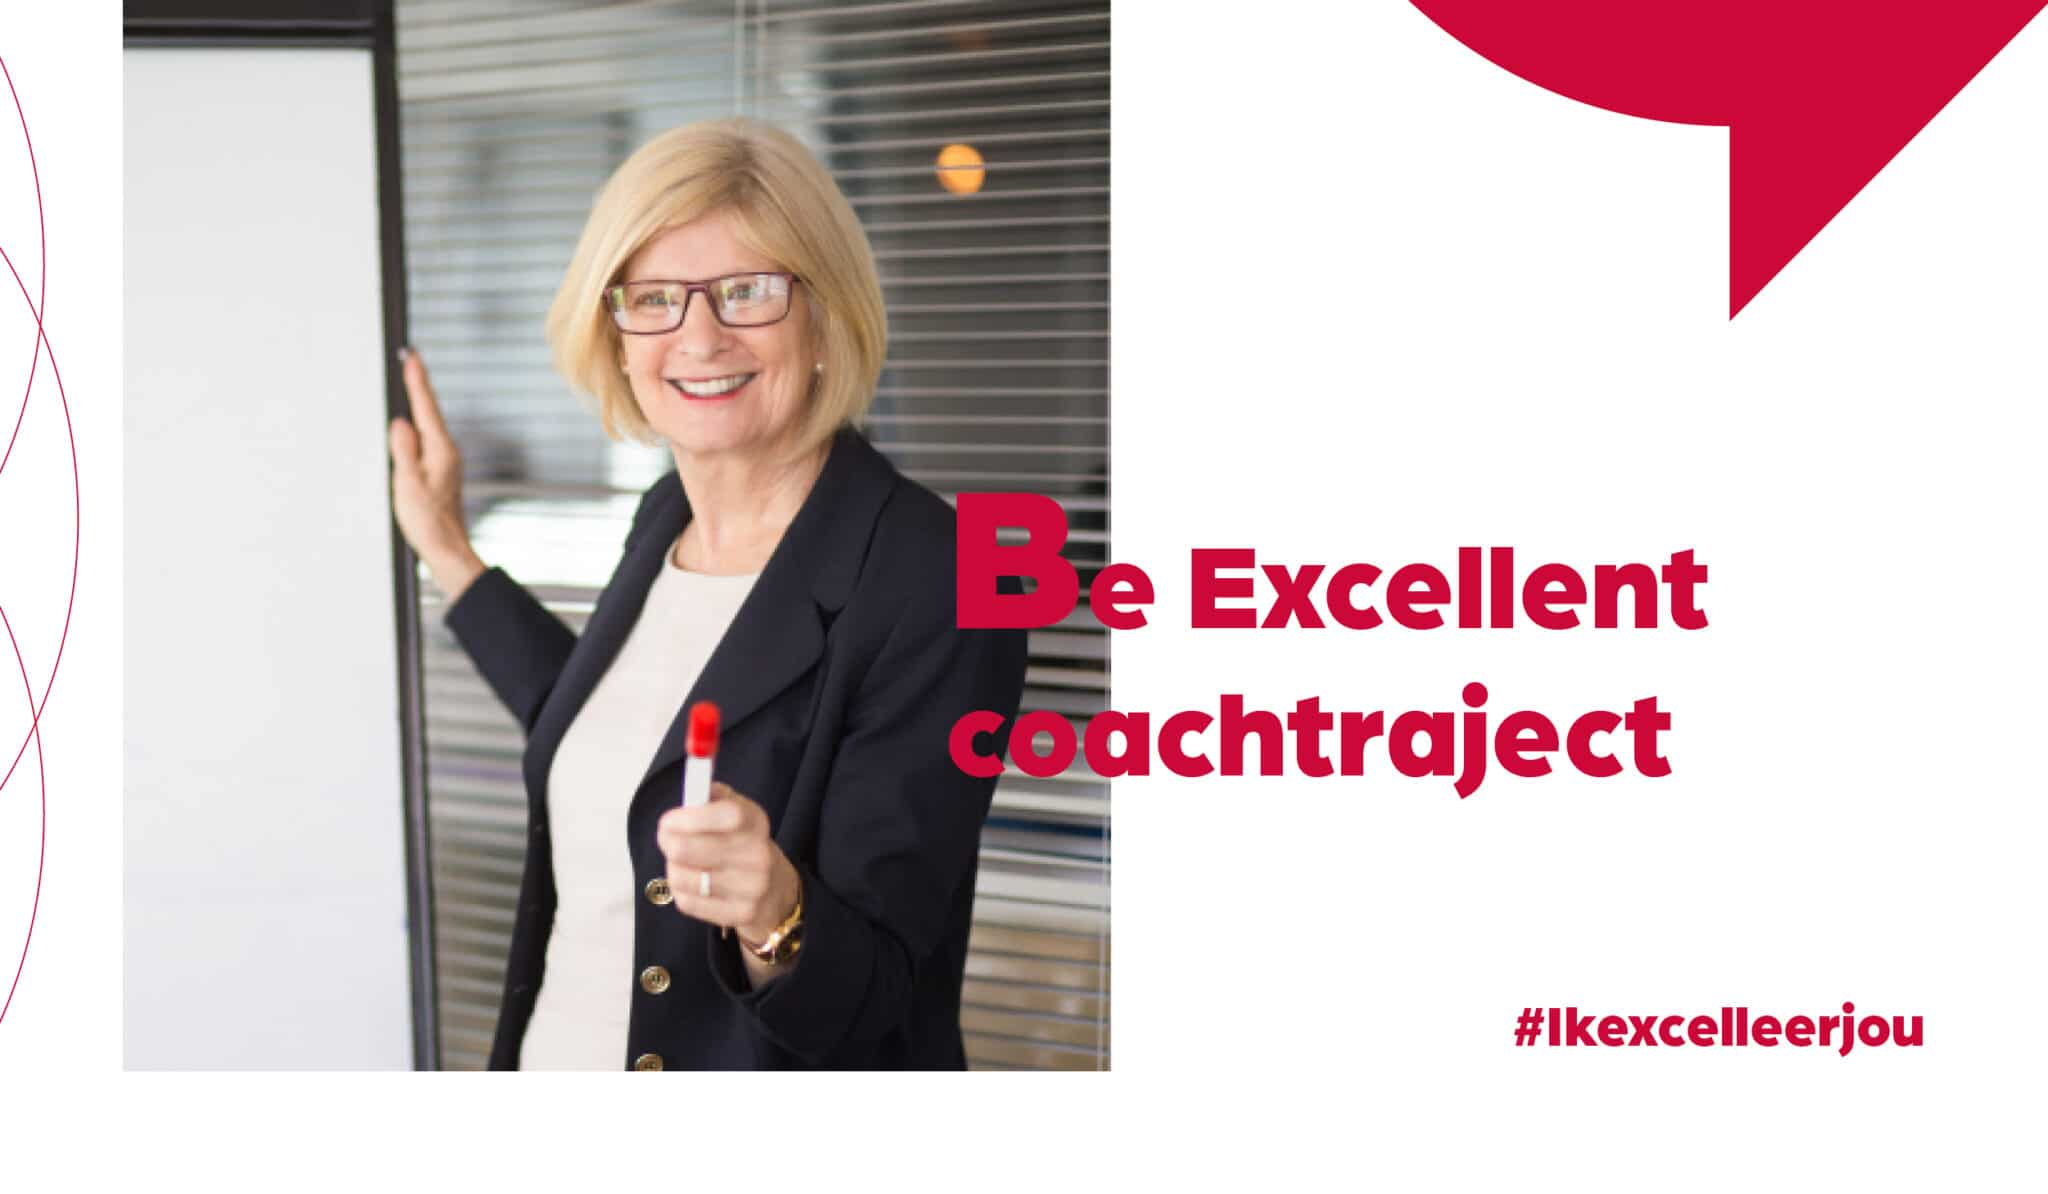 Be Excellent academy - 7LIFE - coachtraject